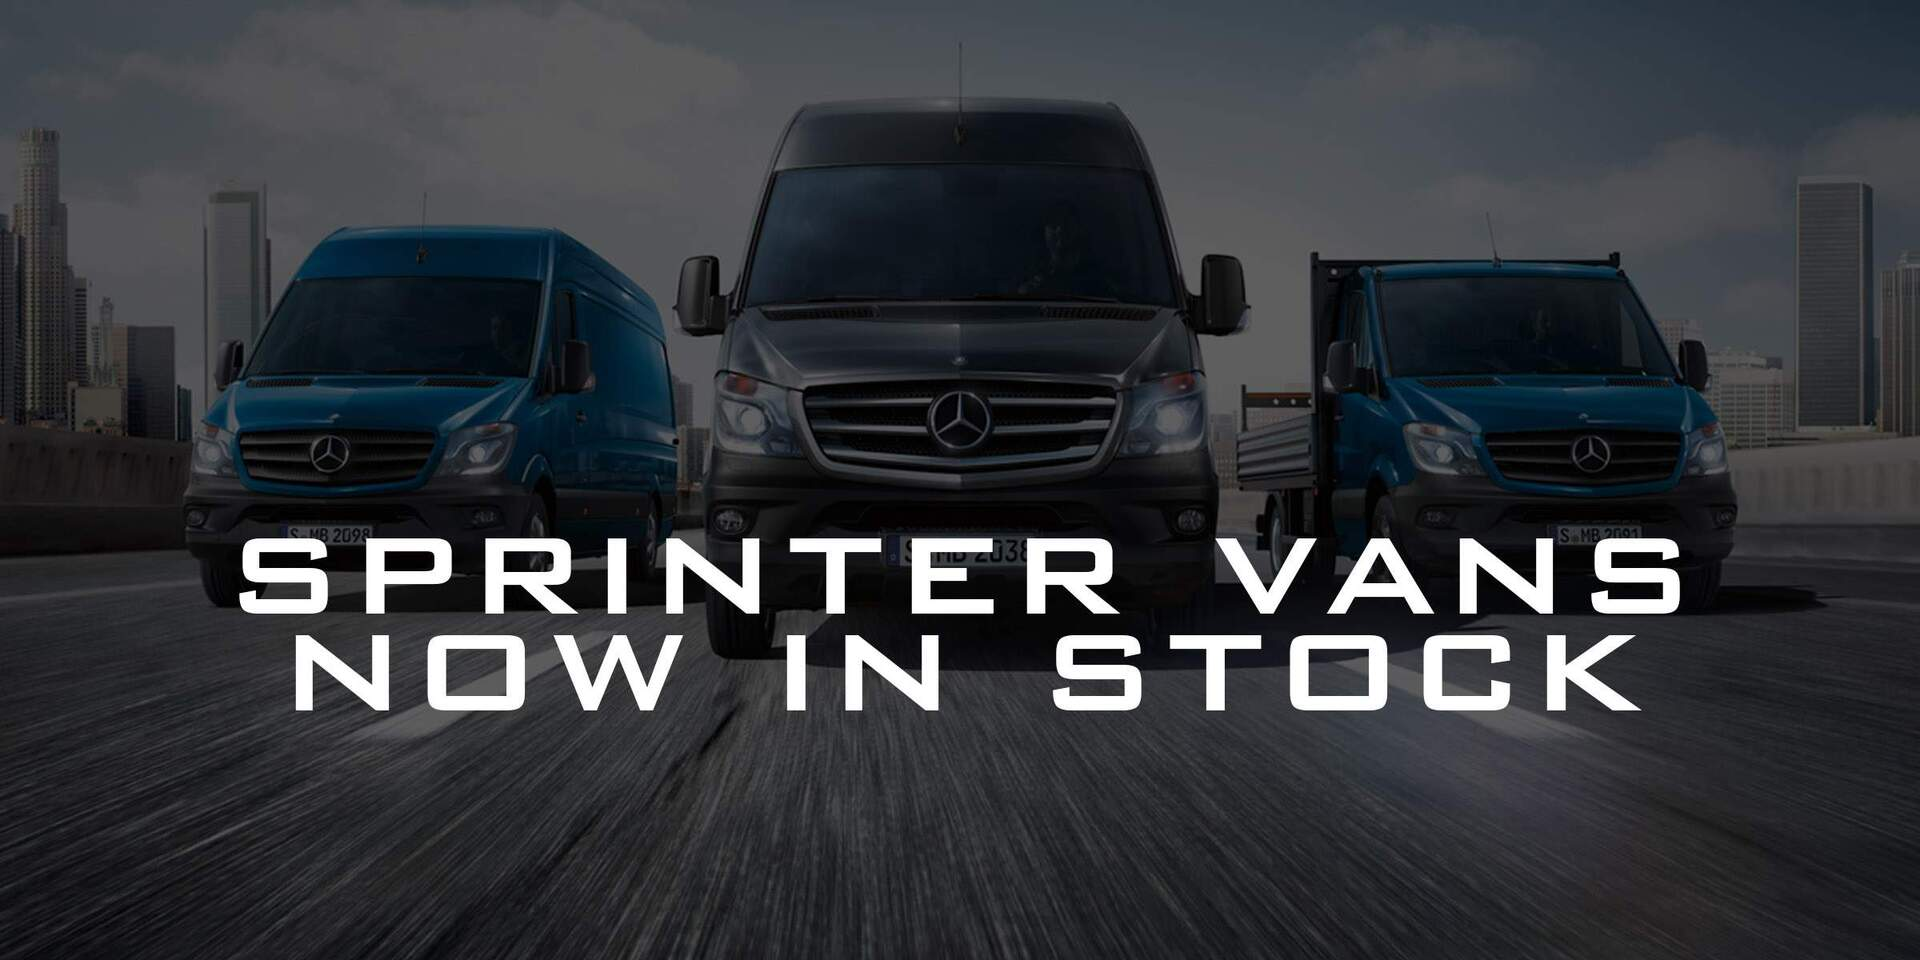 Utah Sprinter Van Sales and Service in Bountiful